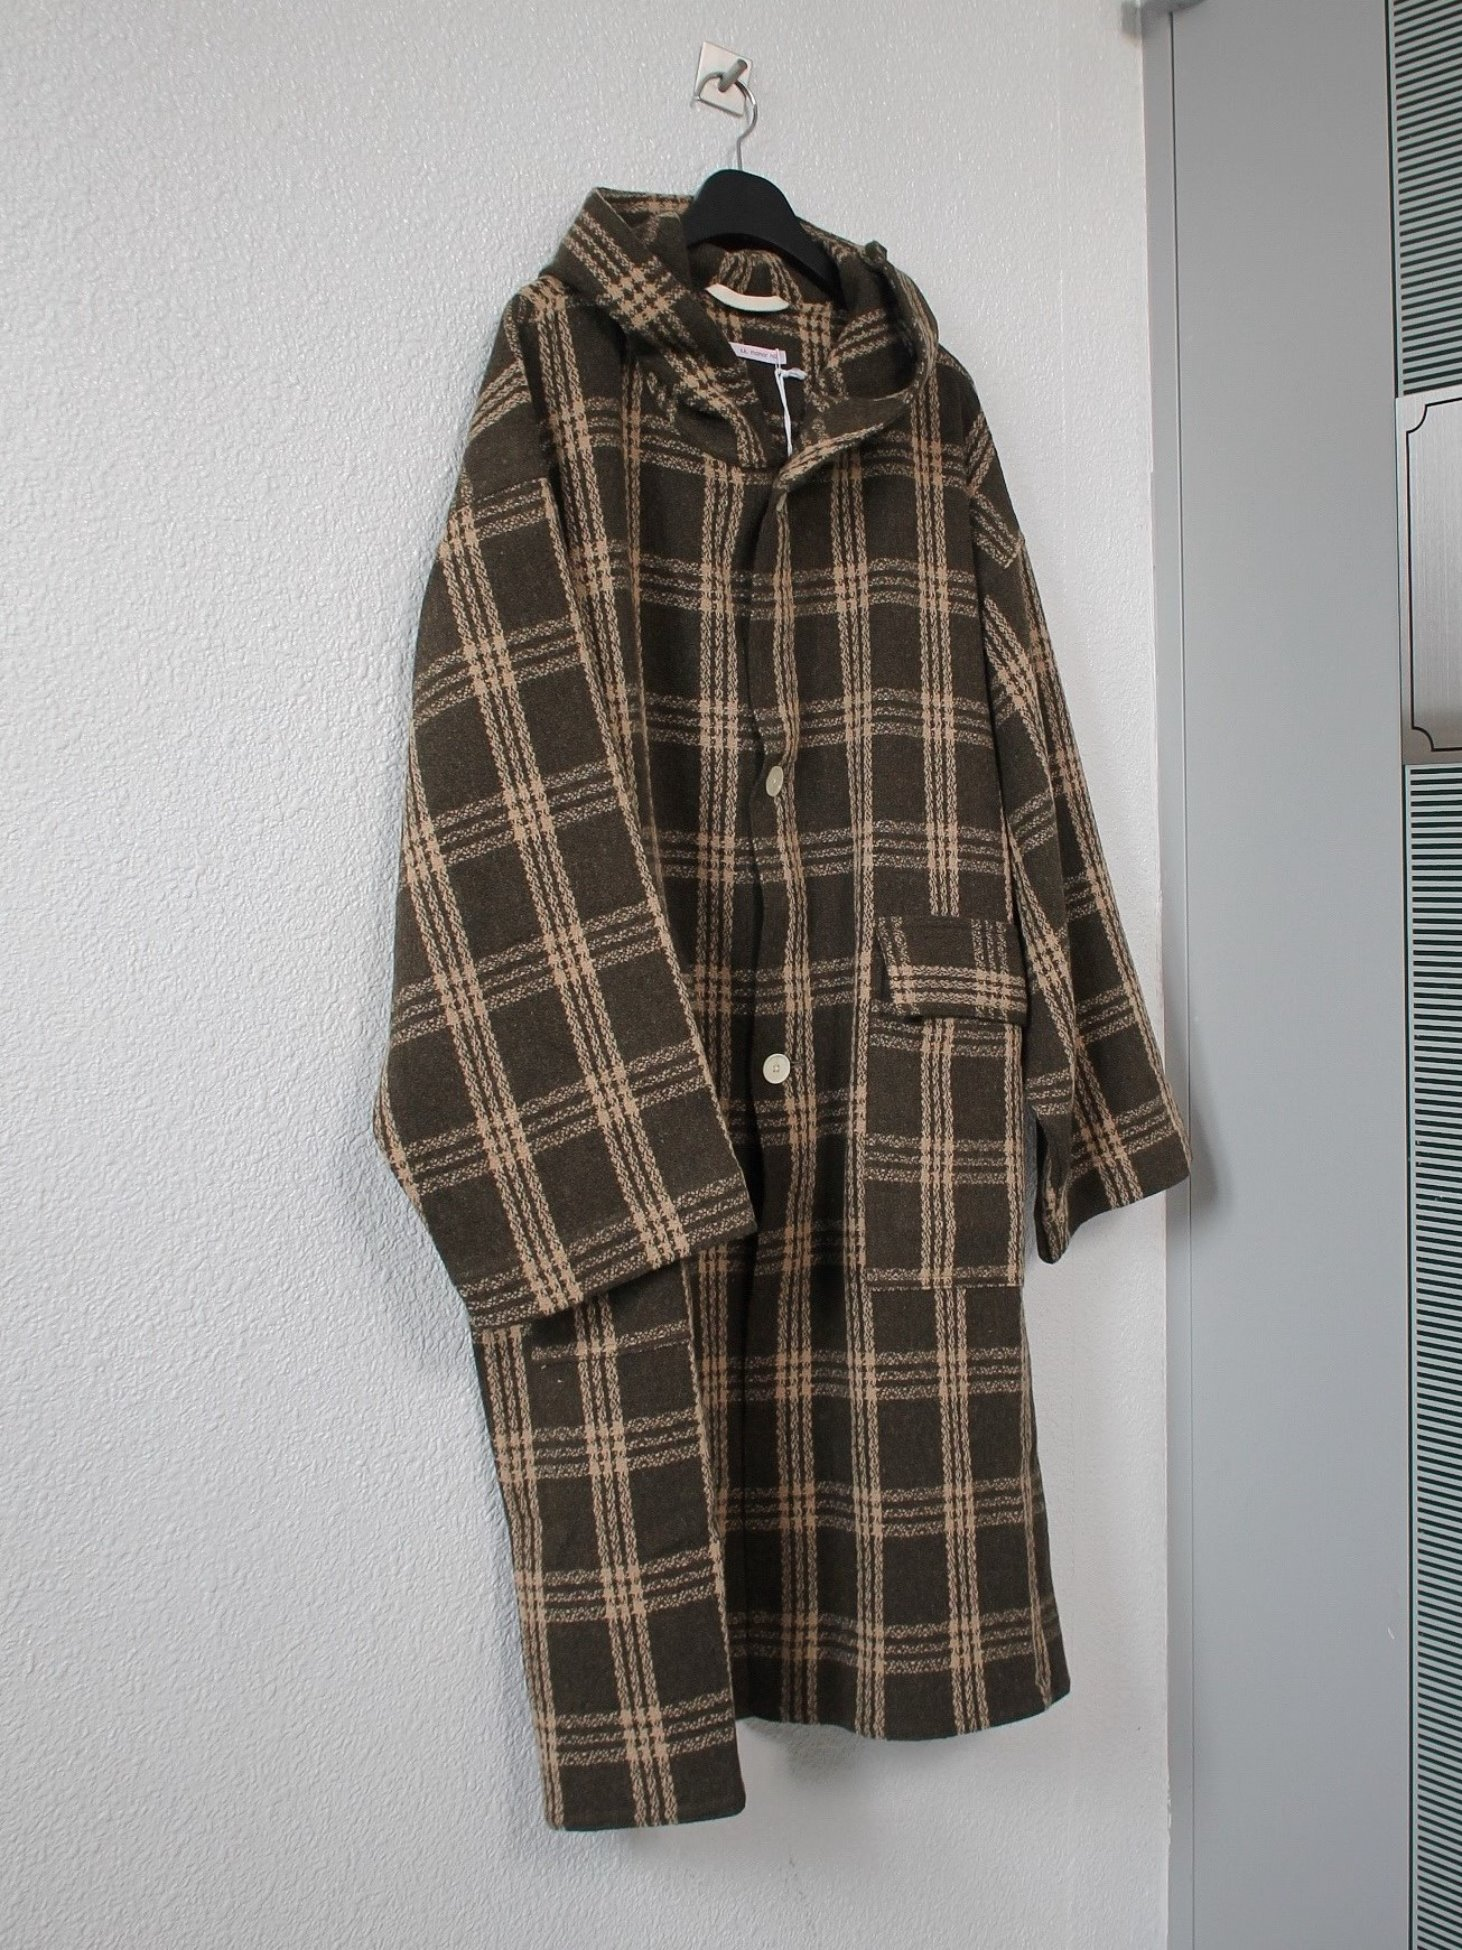 [s.k. manor hill] Hooded Canopy Coat - Brown Plaid